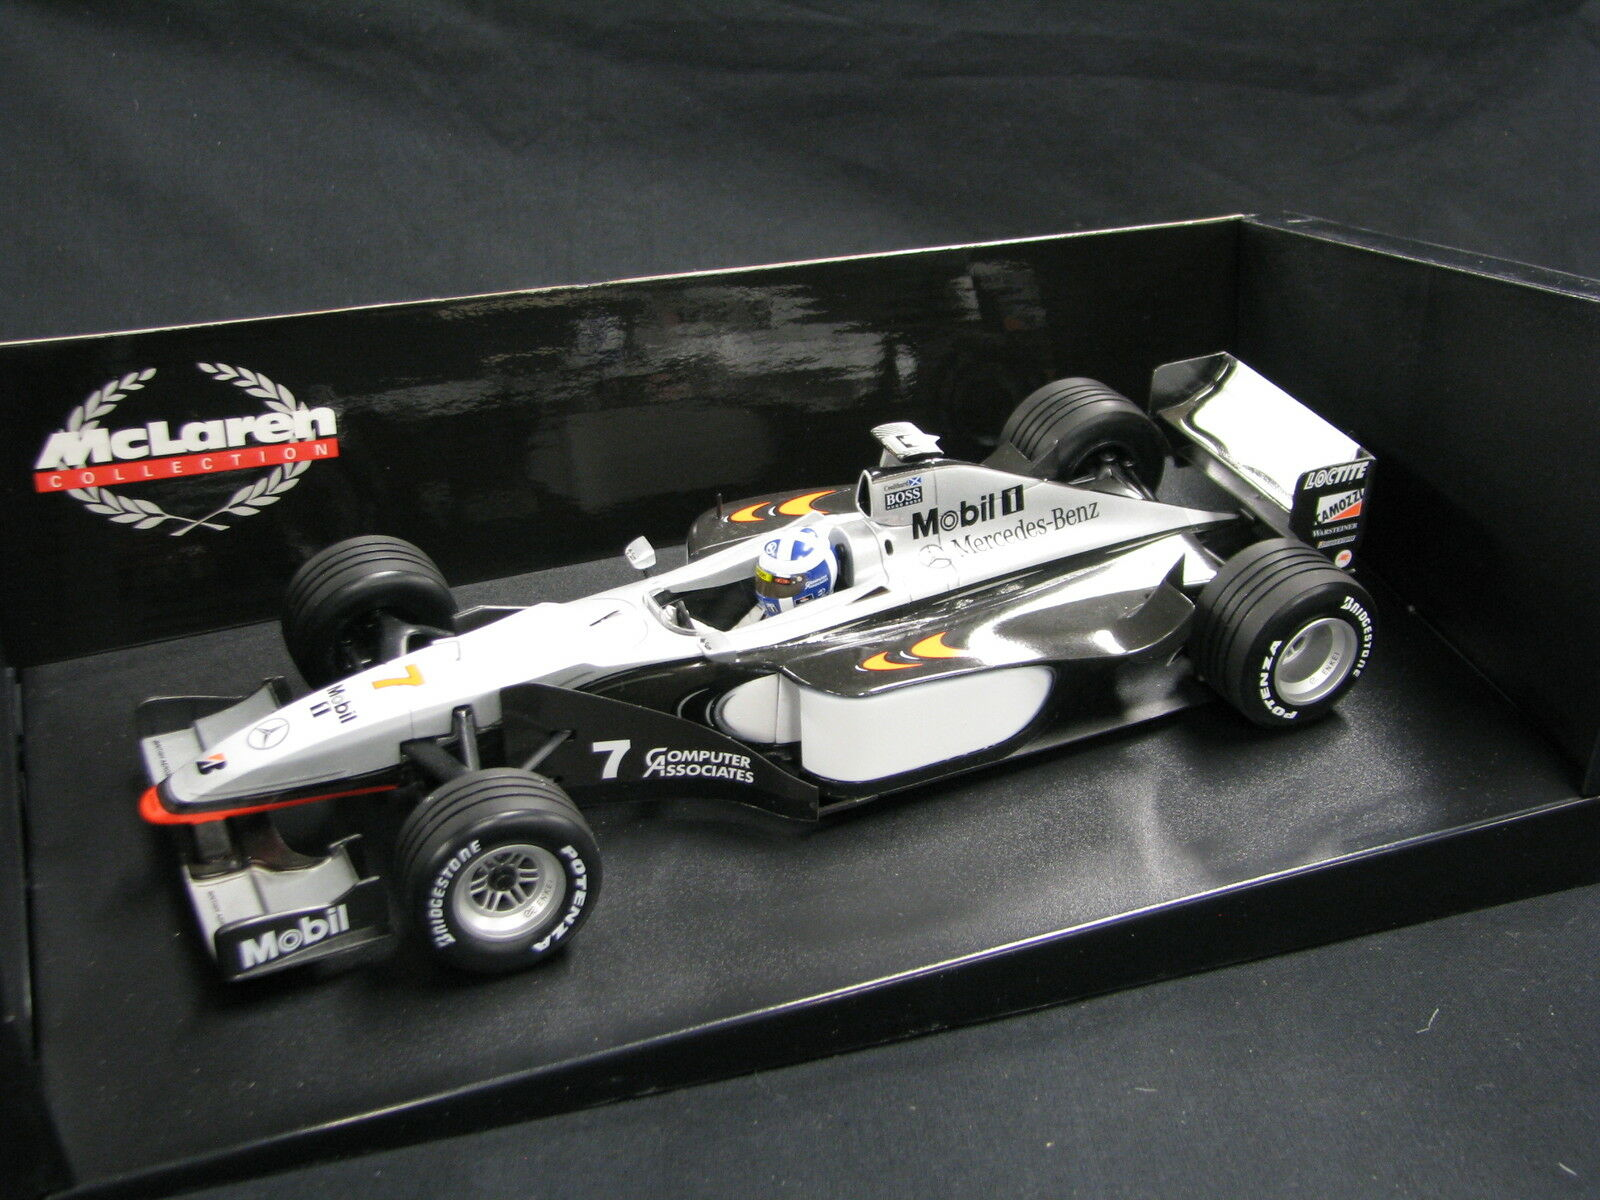 Minichamps McLaren Mercedes MP4 13 1998 1 18  7 David Coulthard (GBR) (JS) ND